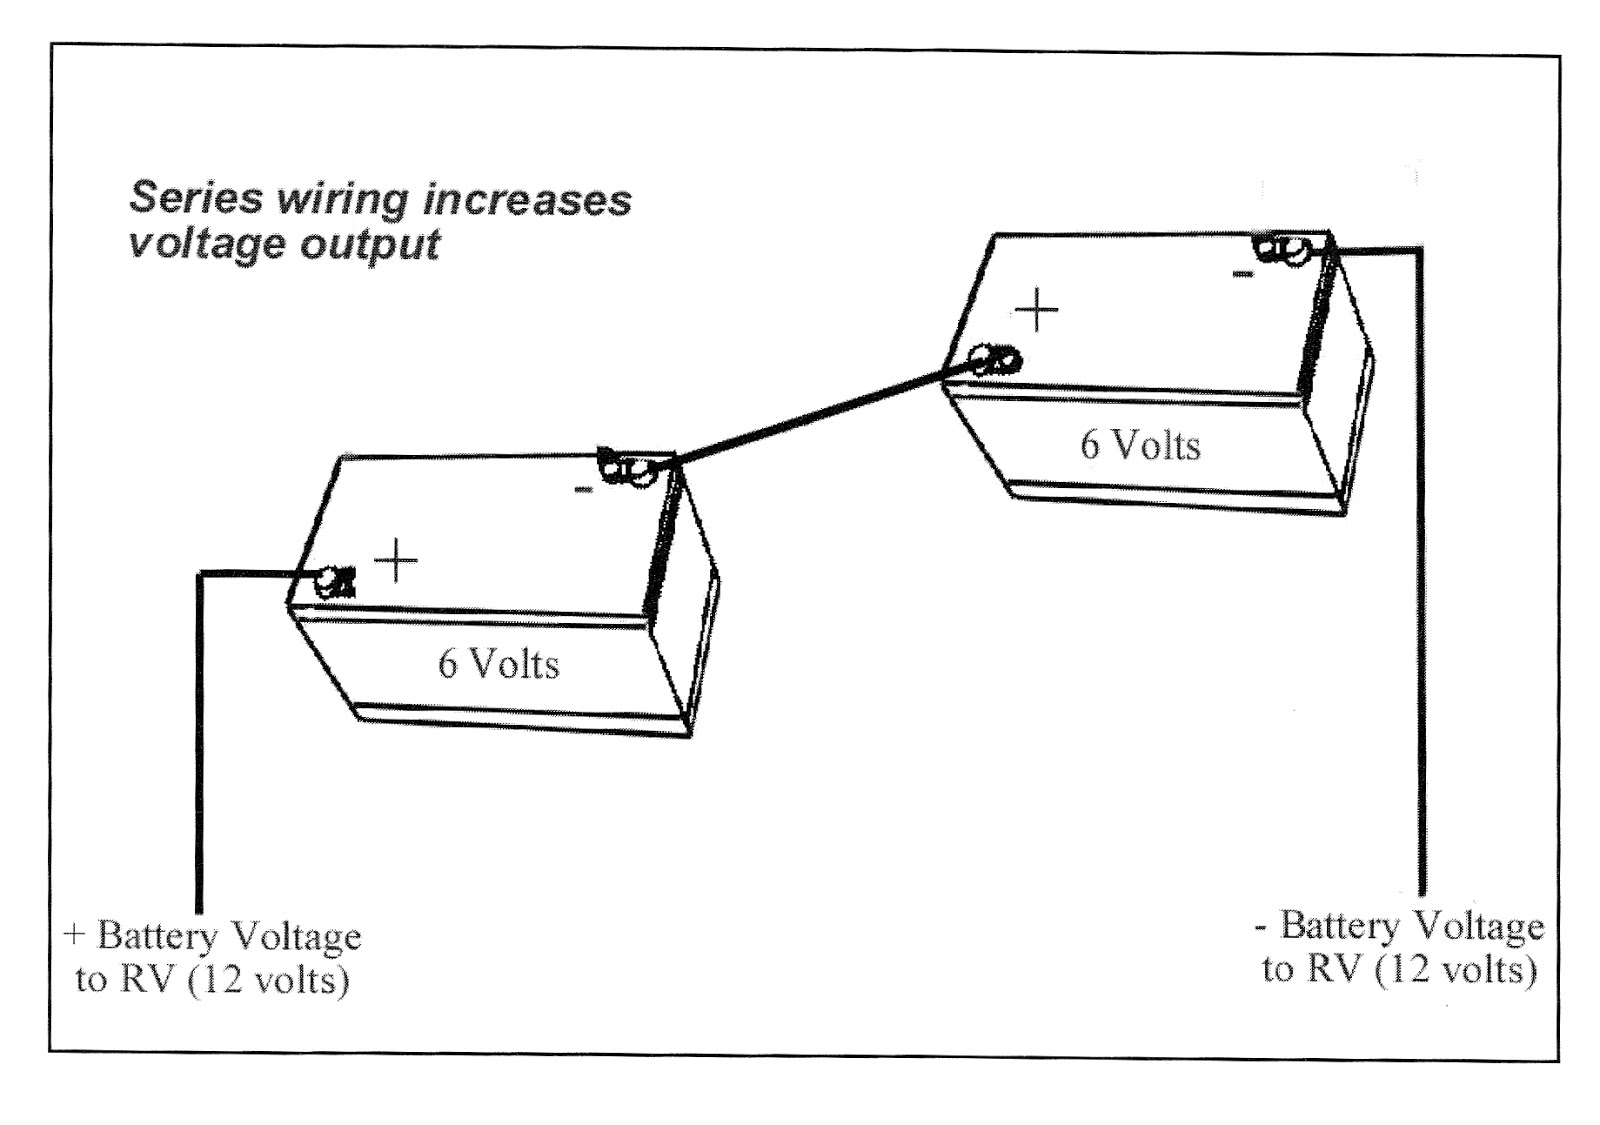 battery+series+wiring+diagram penny's tuppence (2 cents in brit) november 2012 Light Switch Wiring Diagram at webbmarketing.co